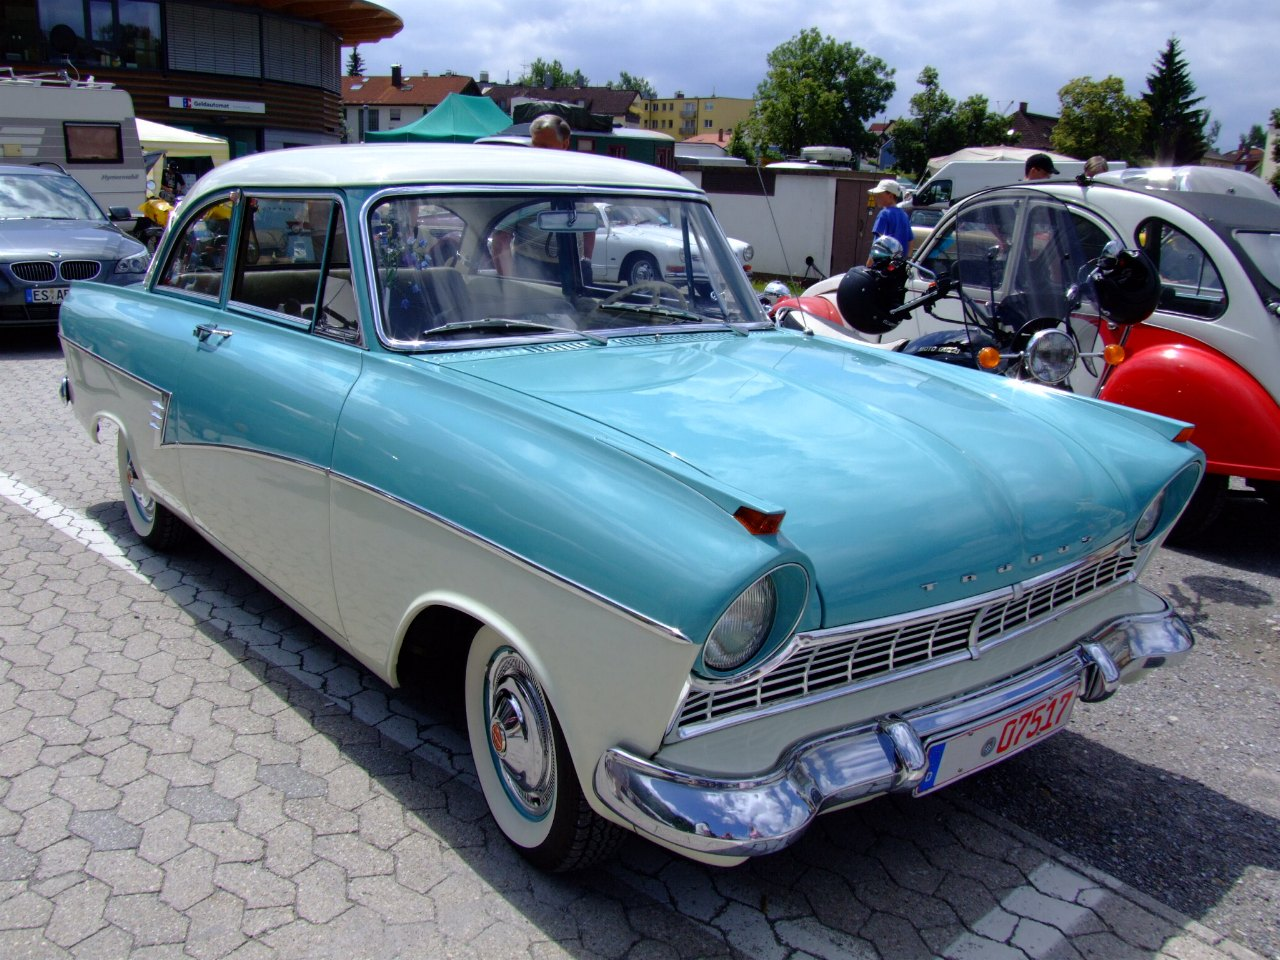 Re: Opel Rekord and Opel